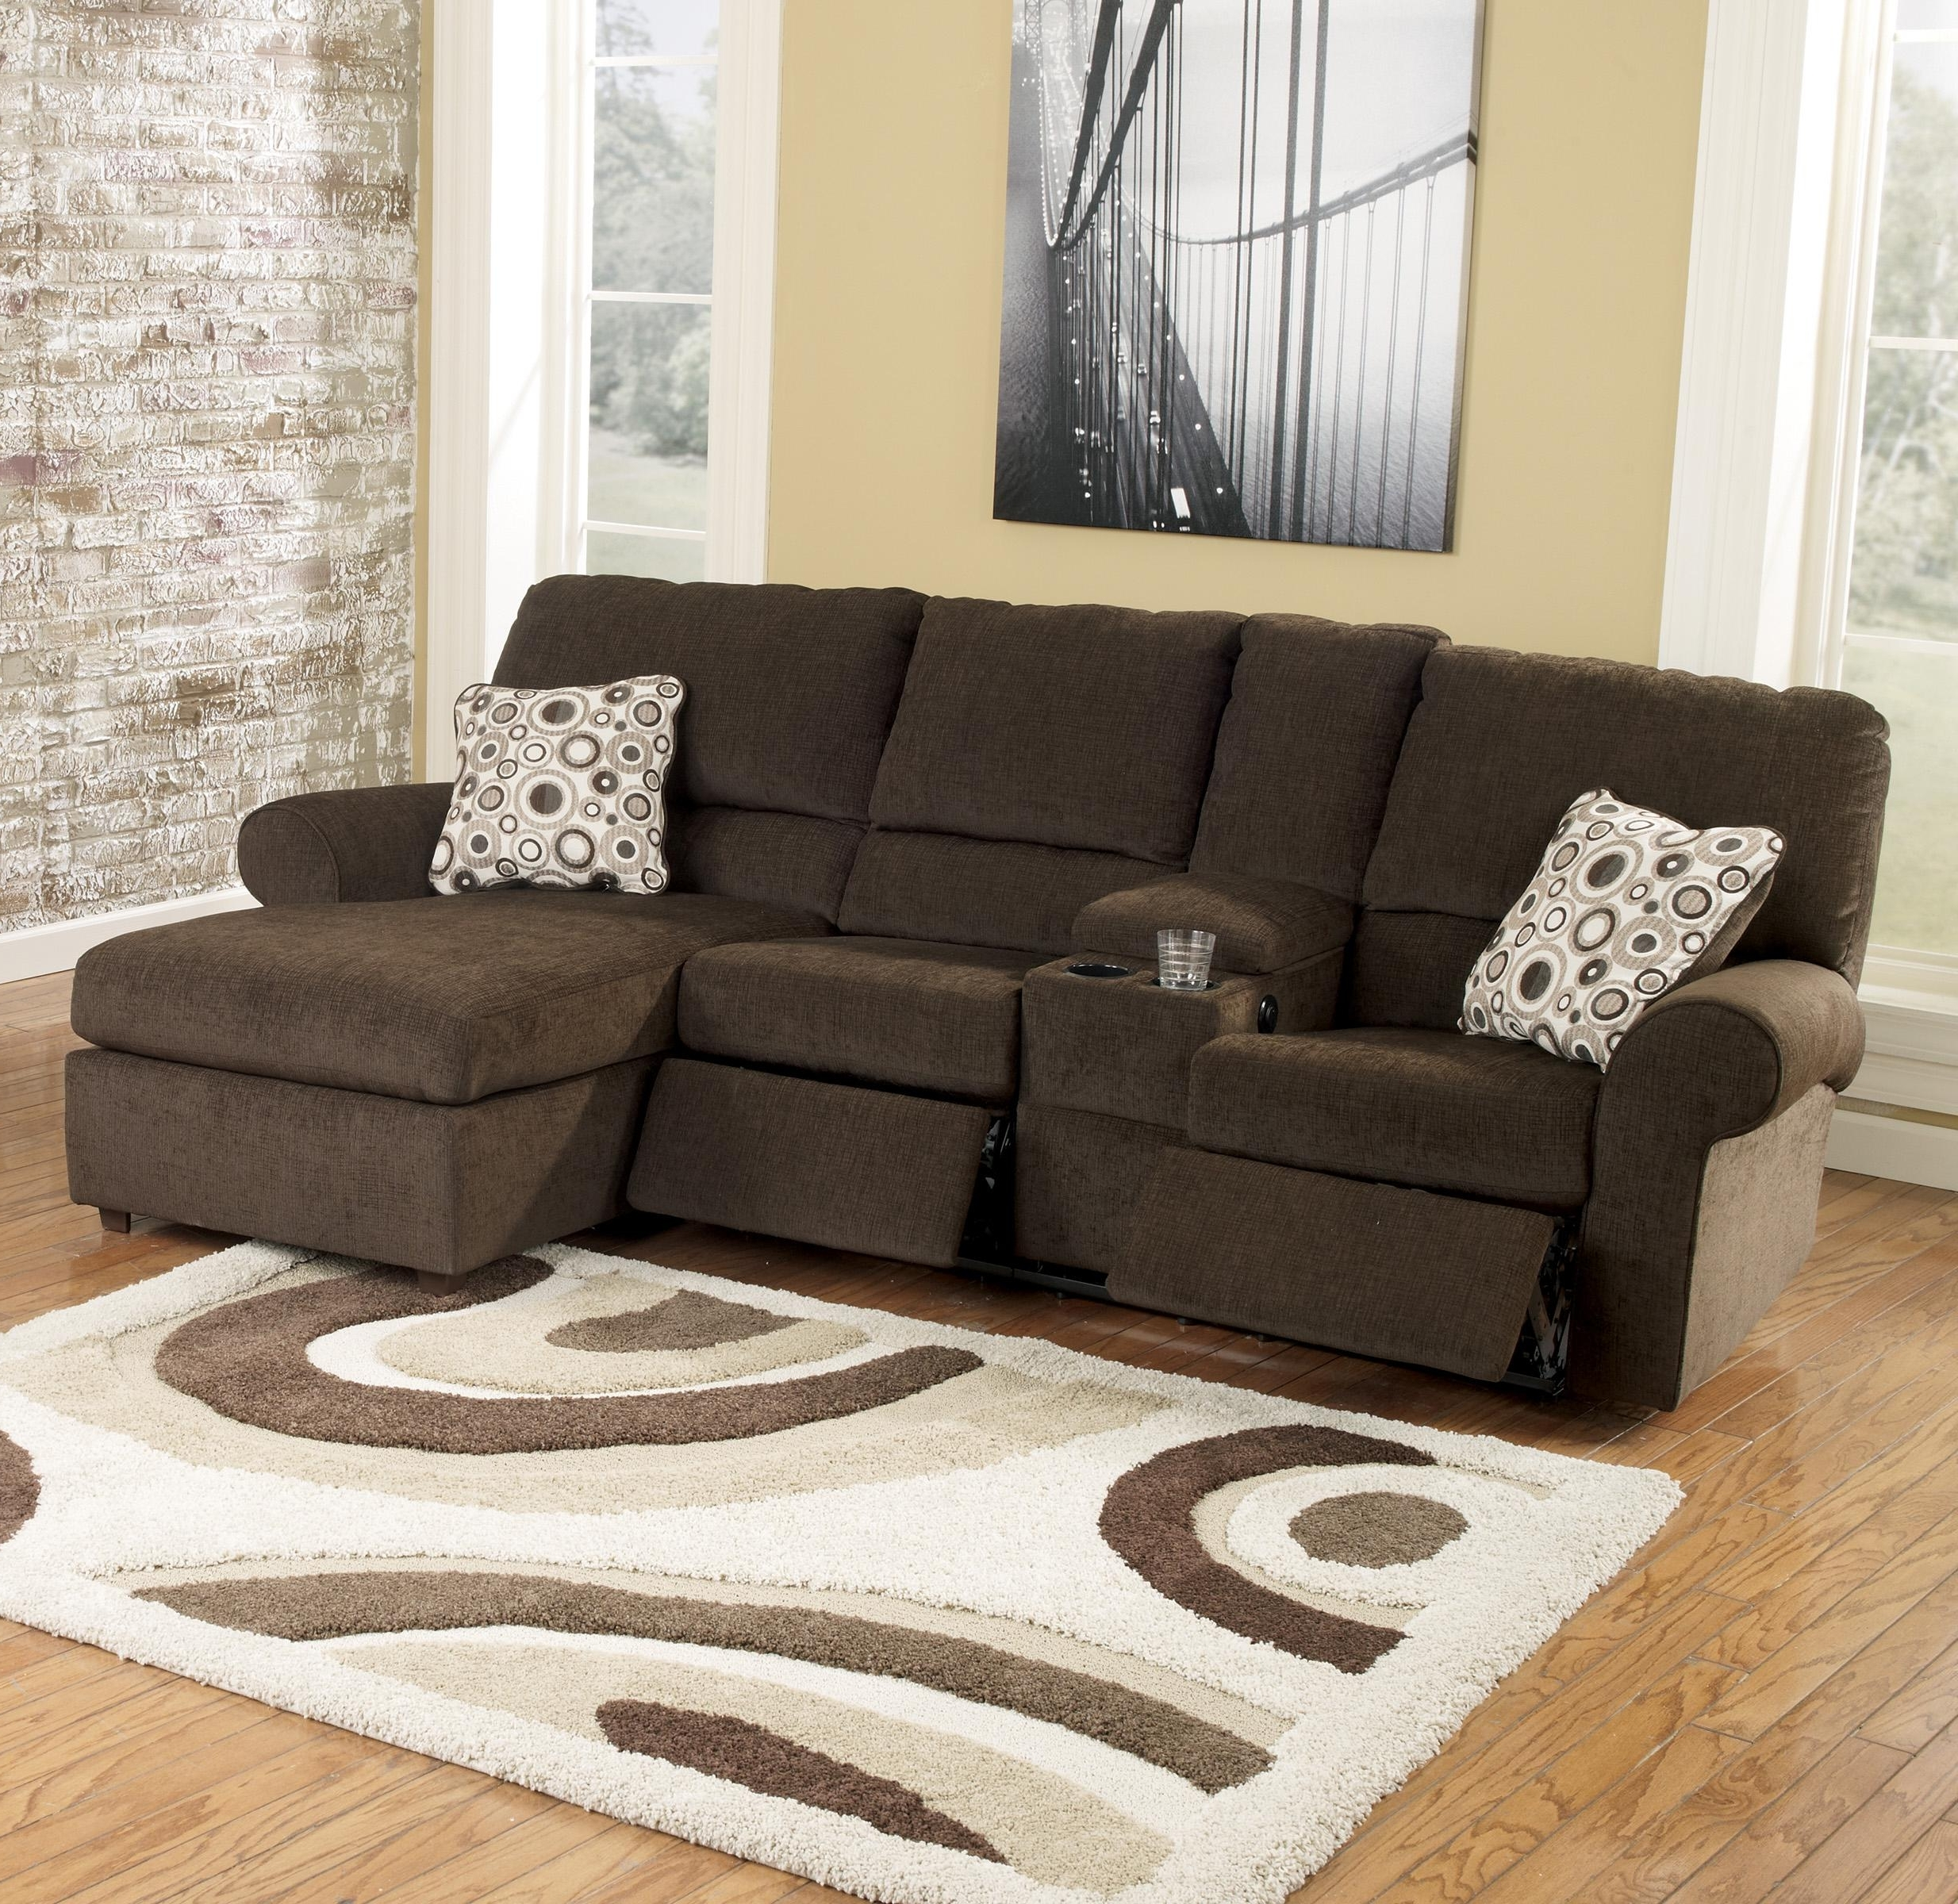 Sofa : Engaging Small Sectional Sofa With Recliner Round Cup With Most Popular Sectional Sofas With Recliners (View 14 of 20)